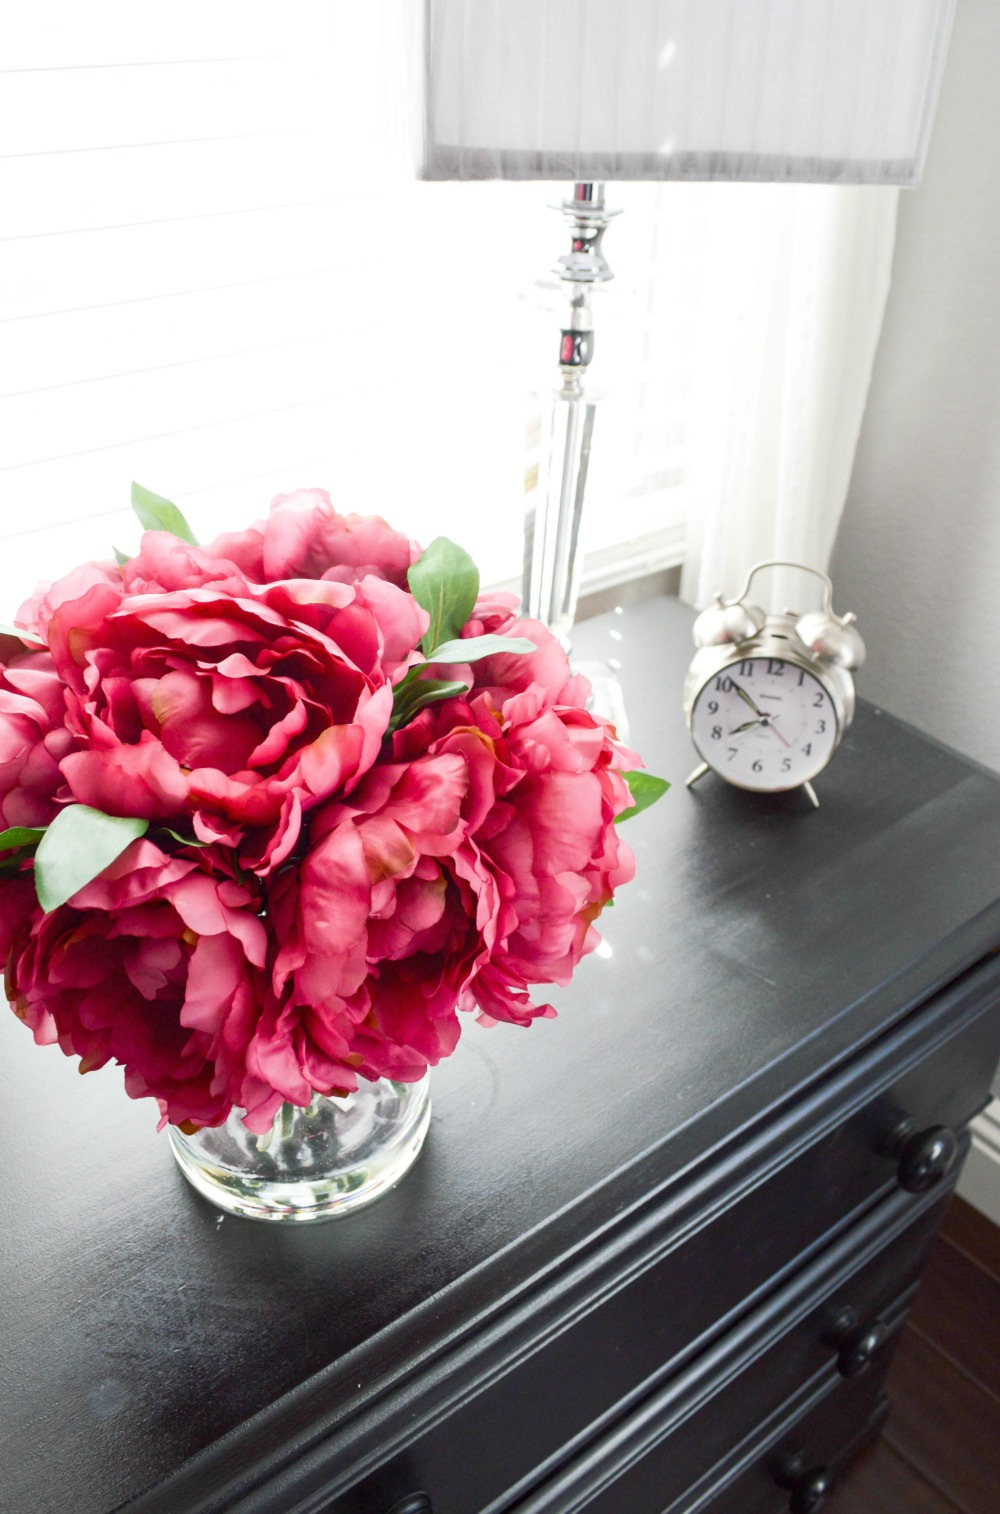 Vibrant pink flowers against a black and gray dresser